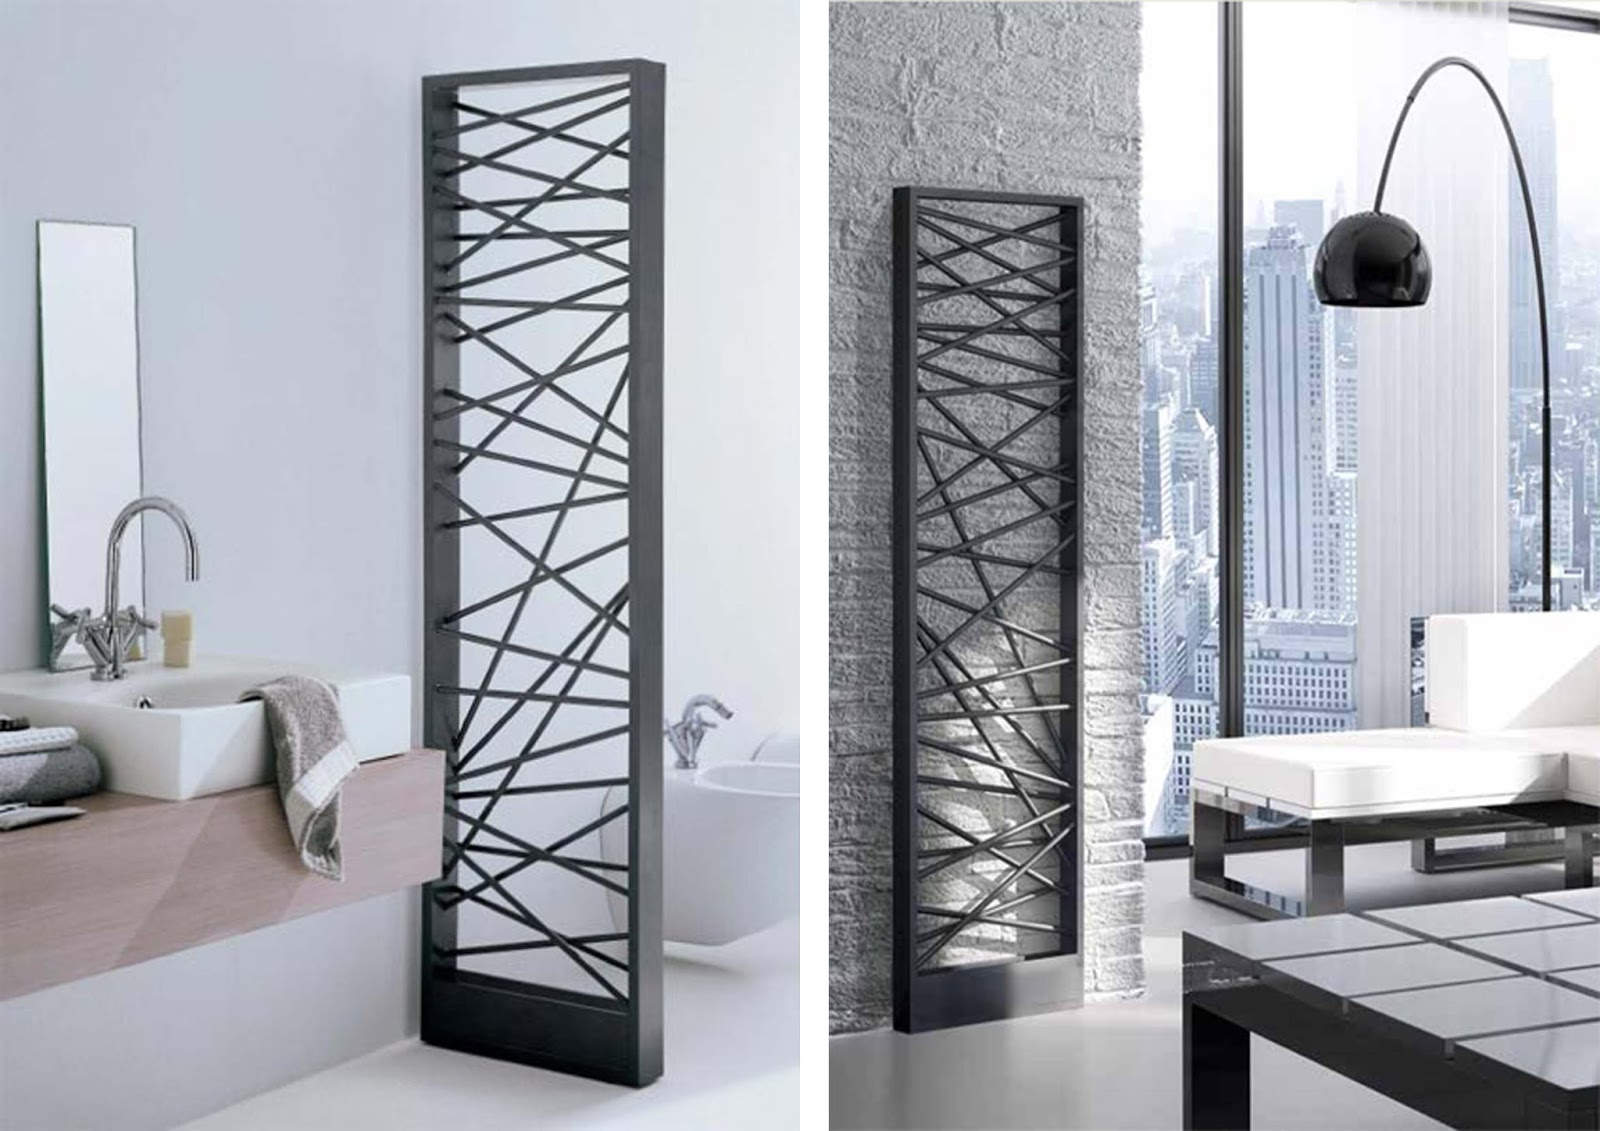 criss cross radiator room divider